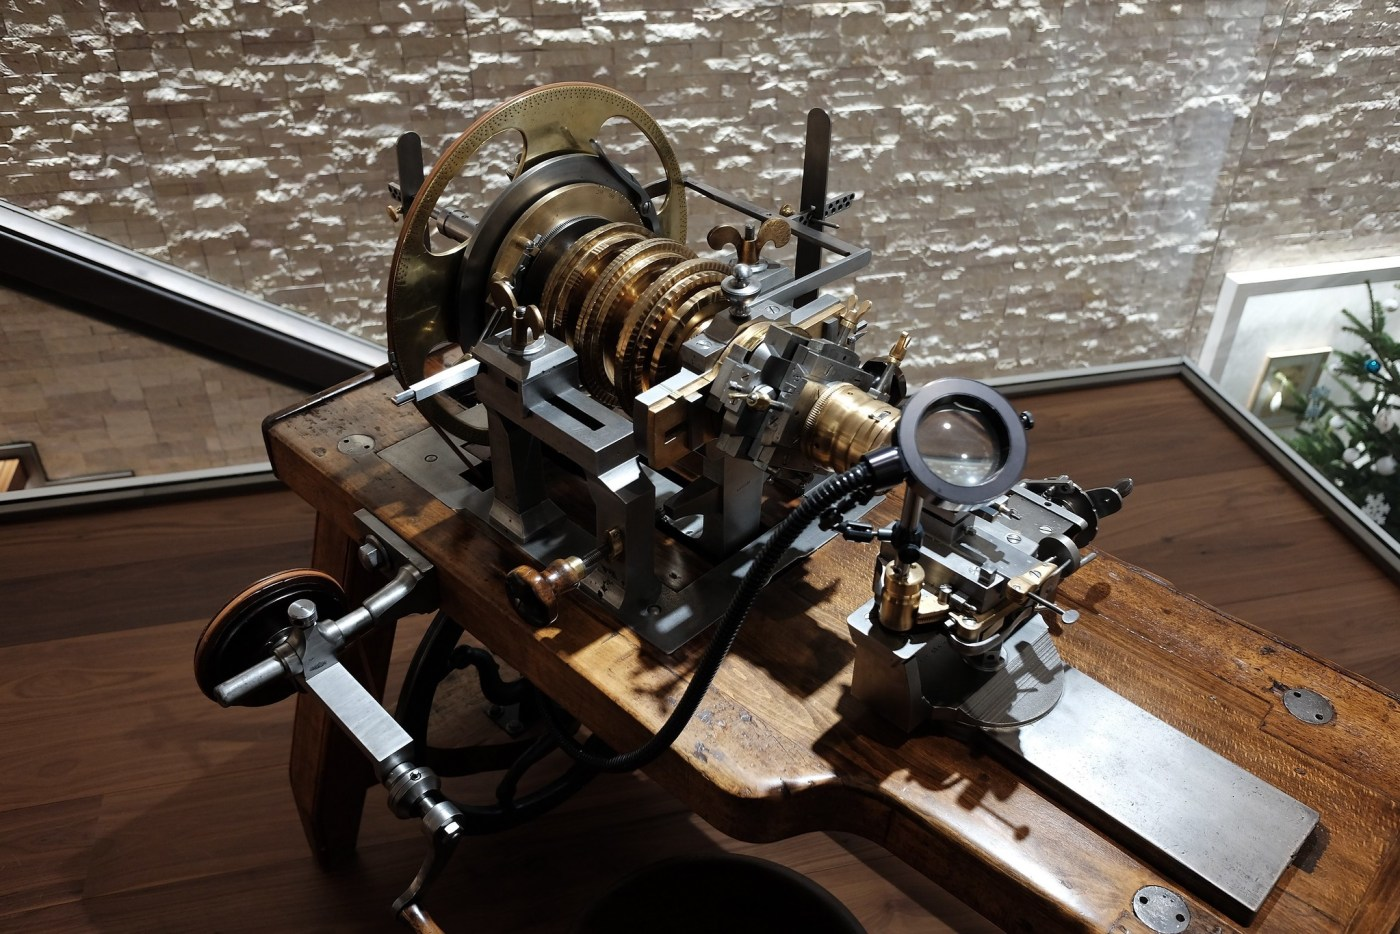 Vintage rose engine lathe used to perform guilloche-work on dials, cases, and other watch components